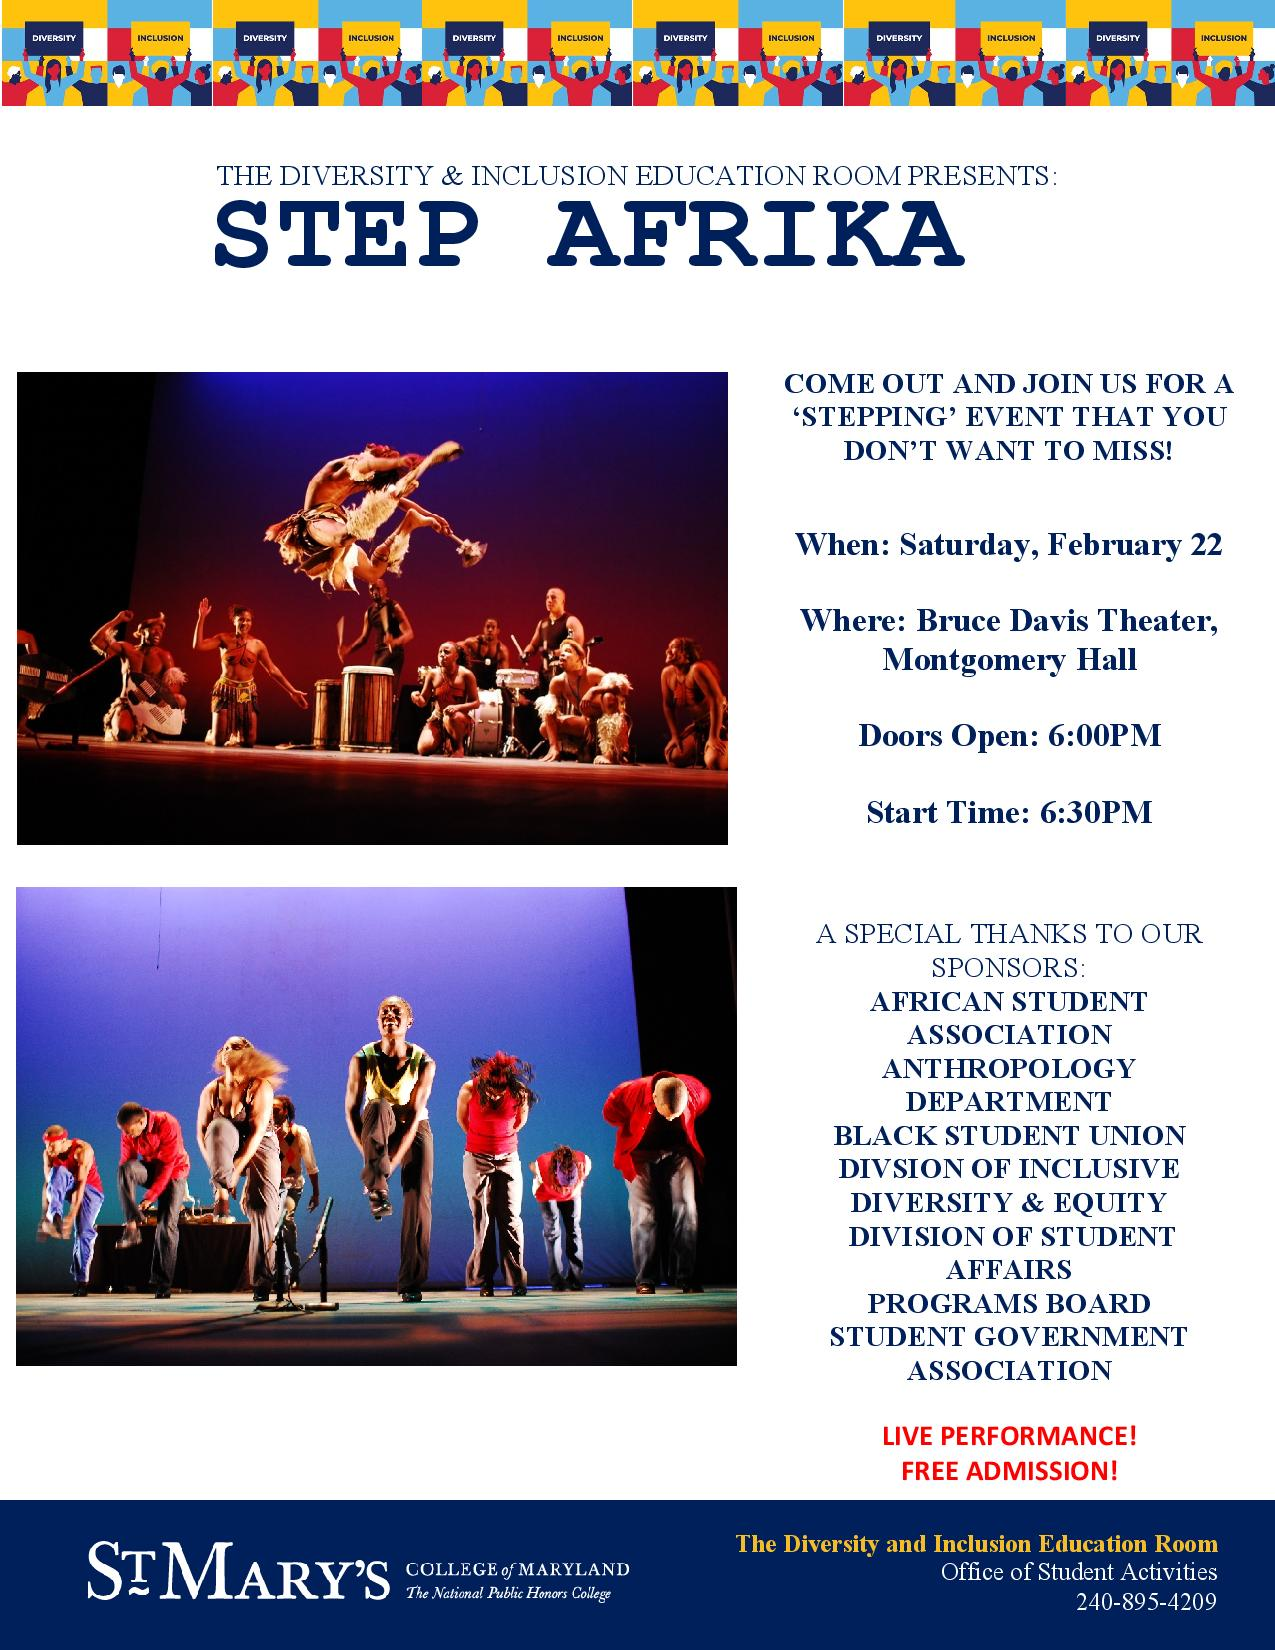 Flyer for STEP AFRIKA